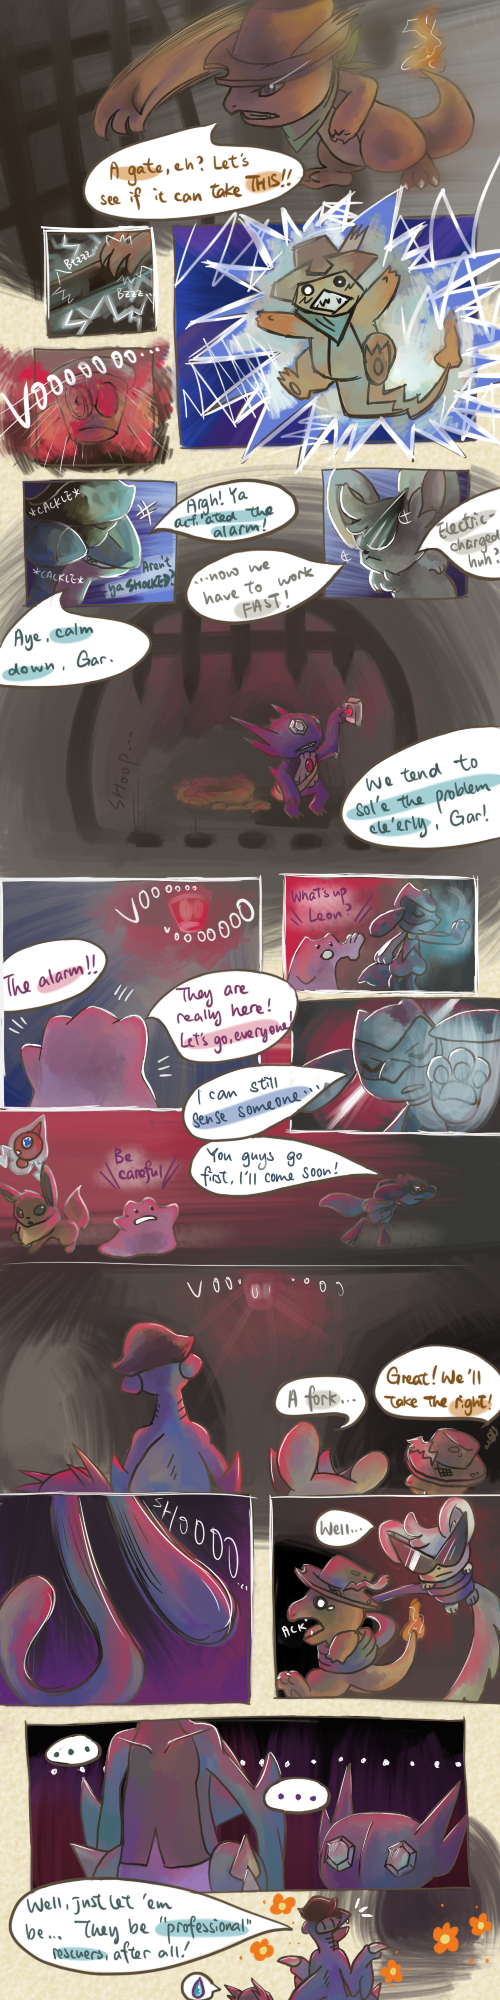 The Masked background story p4 by Haychel